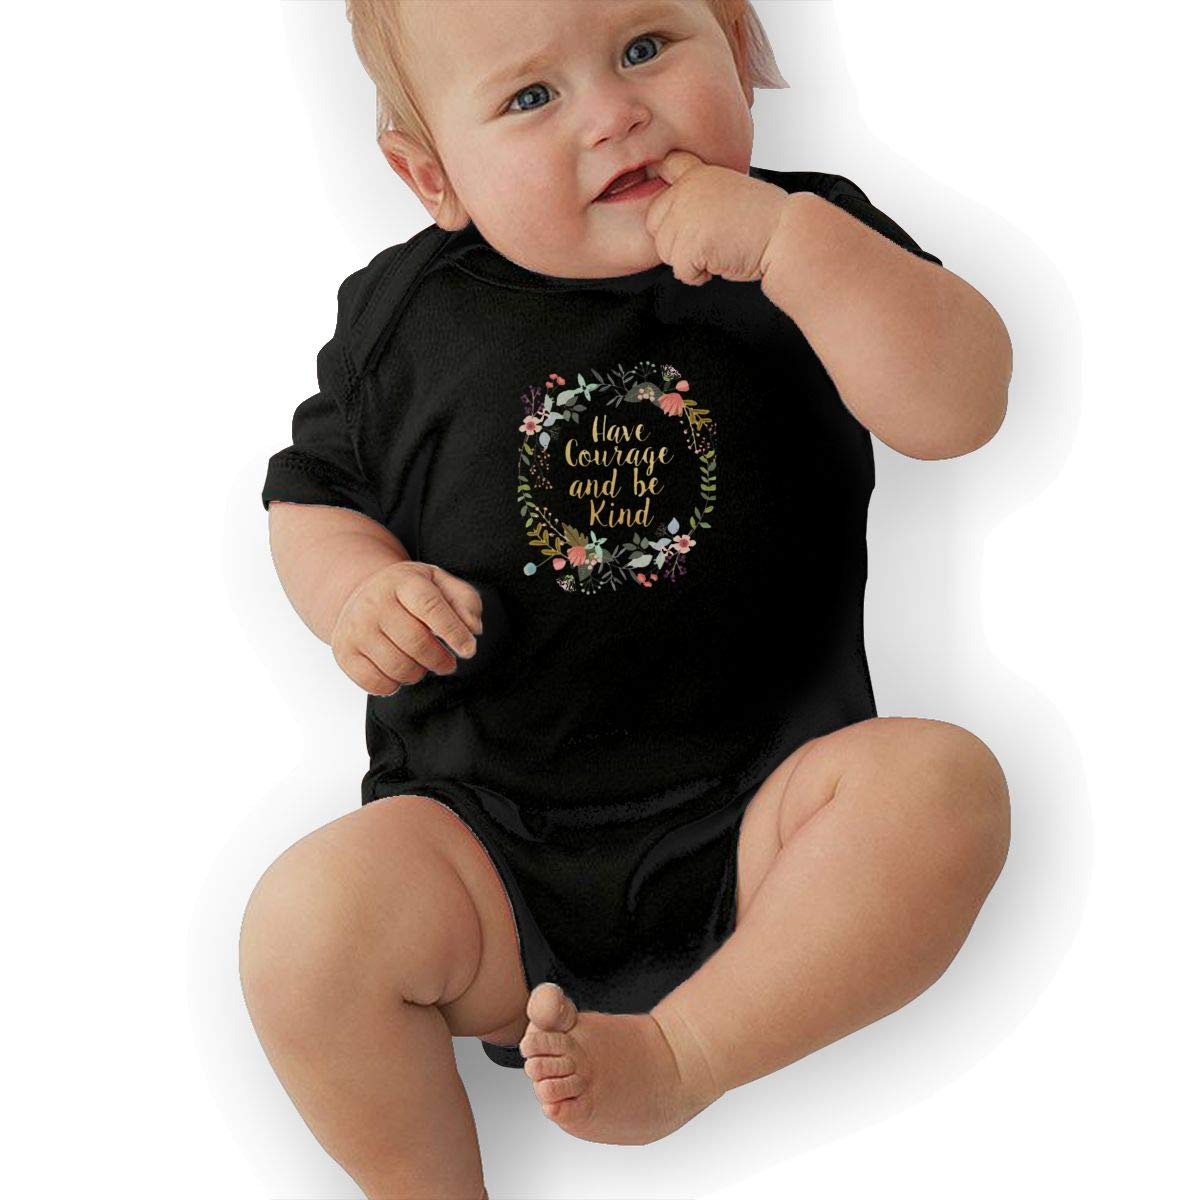 Bodysuits Clothes Onesies Jumpsuits Outfits Black Have Courage and Be Kind Baby Pajamas